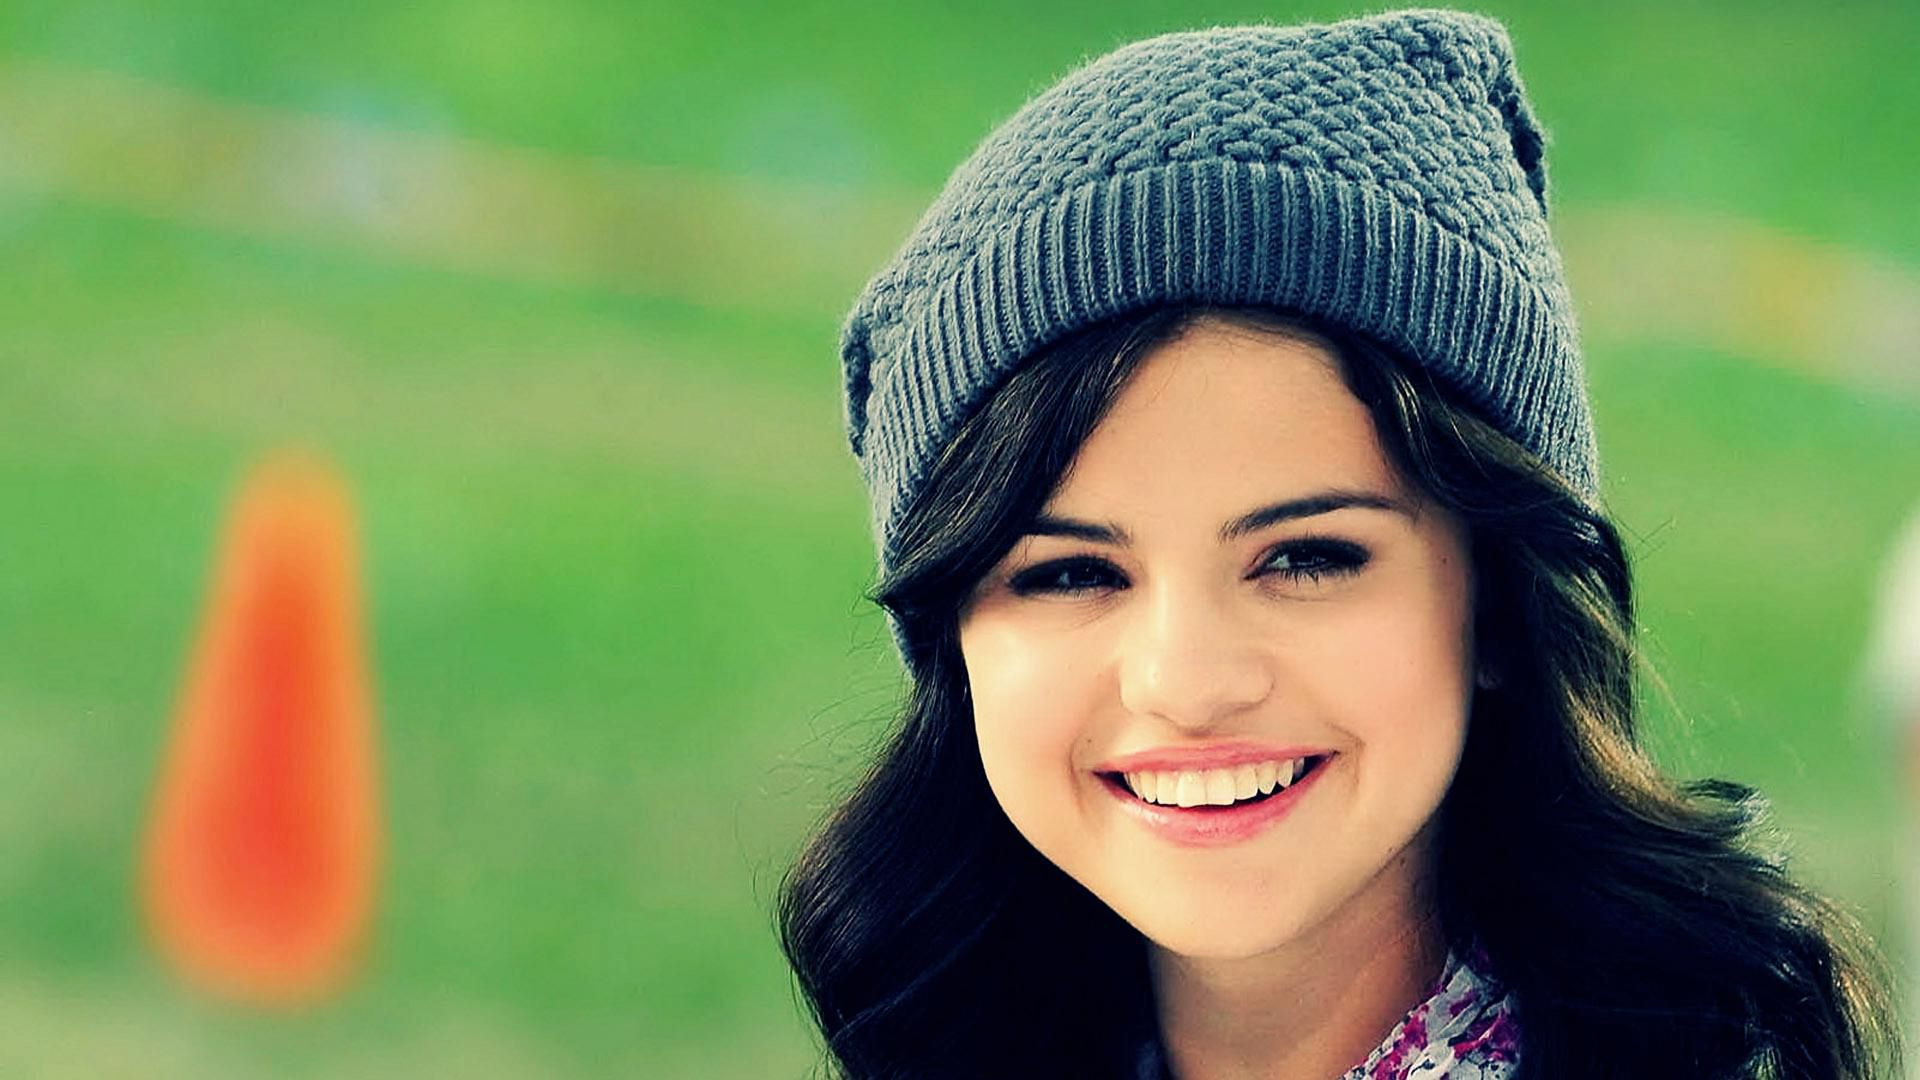 download selena gomez hd wallpapers | cool models | pinterest